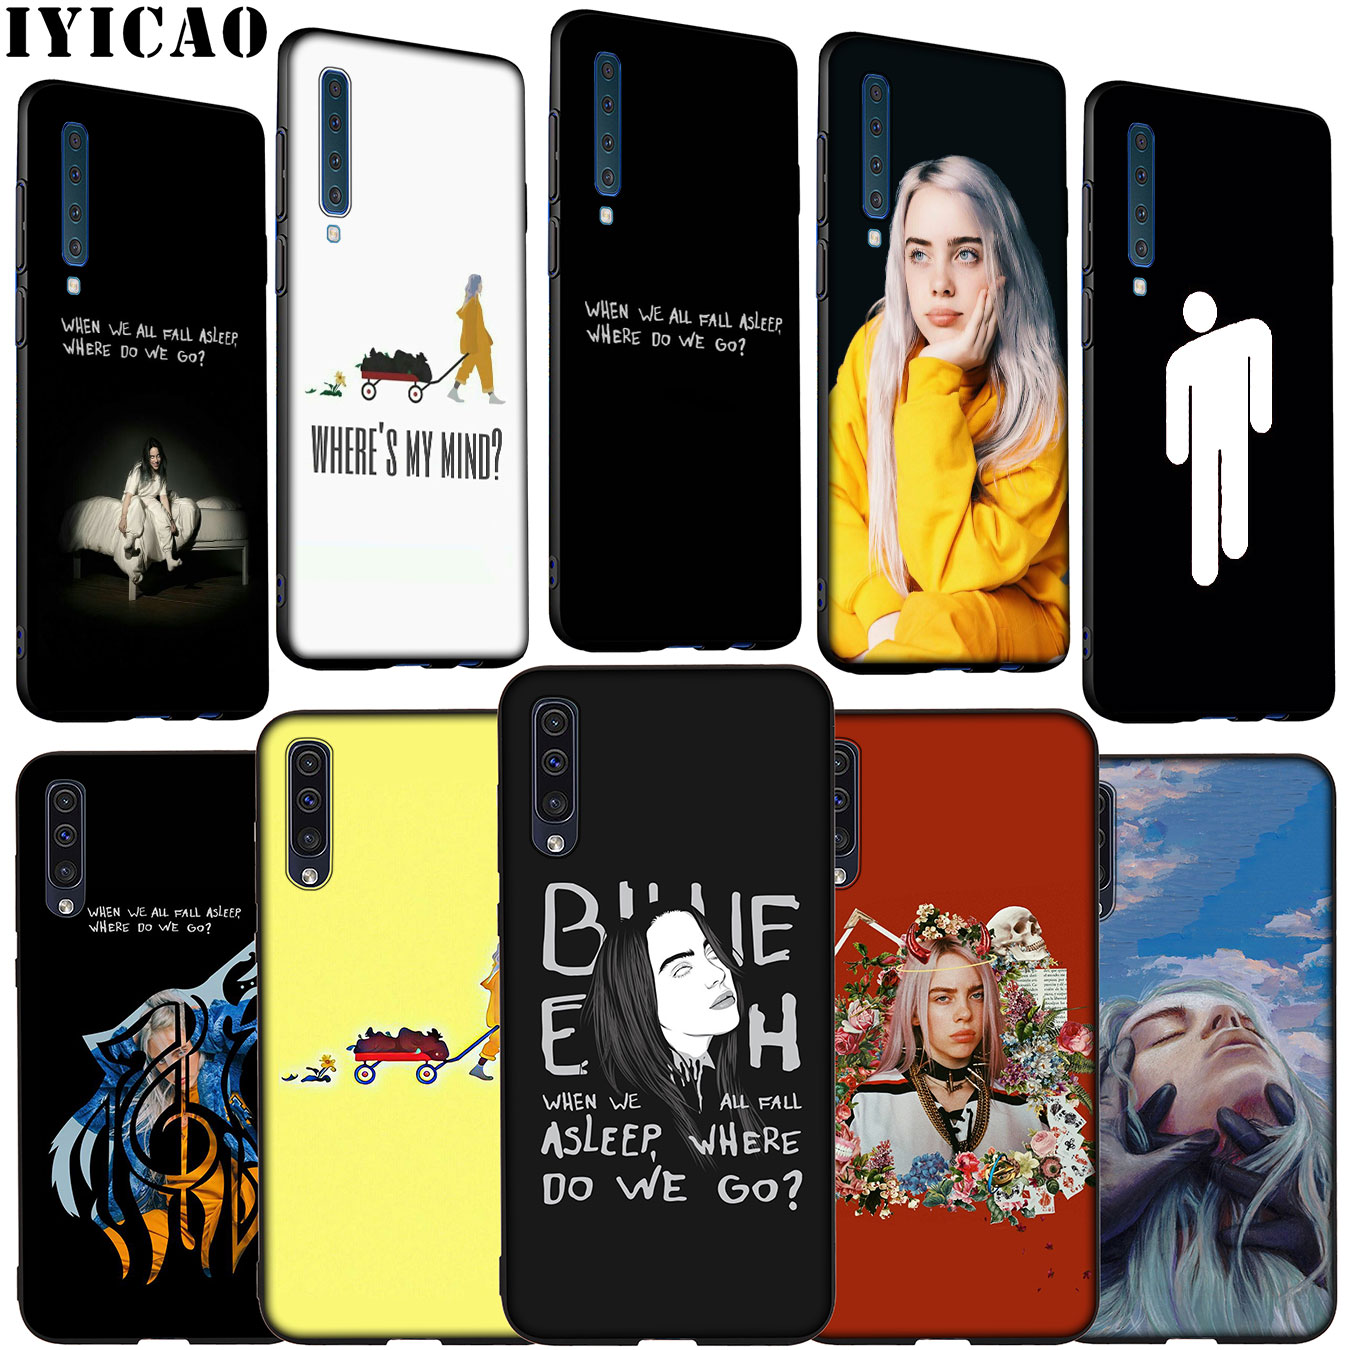 Billie Eilish where do we go Soft <font><b>Silicone</b></font> Phone <font><b>Case</b></font> for <font><b>Samsung</b></font> Galaxy <font><b>A70</b></font> A60 A50 A40 A30 A20 A10 M10 M20 M30 M40 A20E Cover image